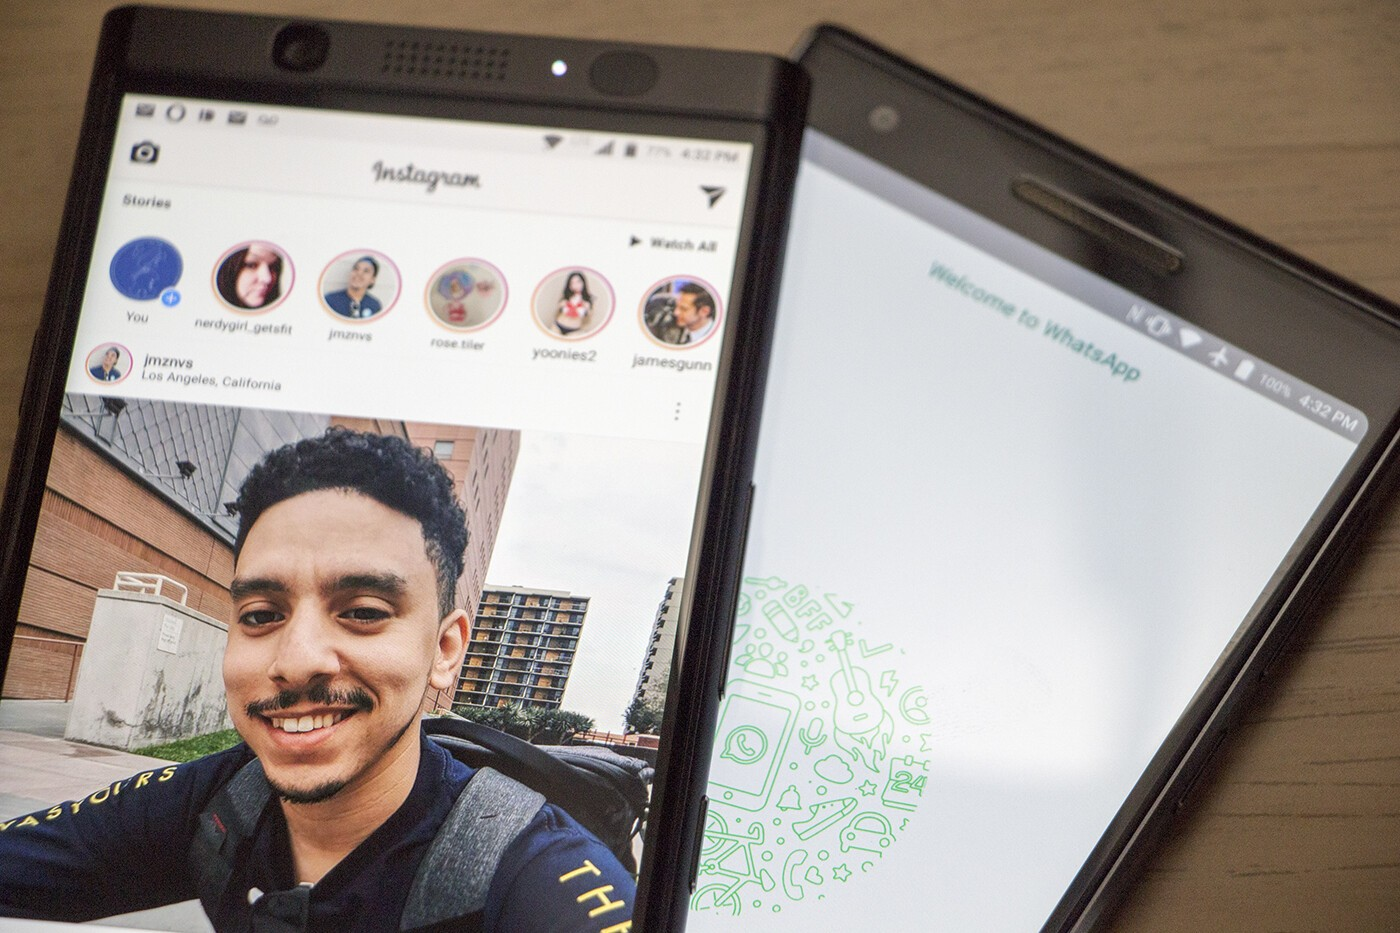 WhatsApp bringing group video calls, video chat coming to Instagram